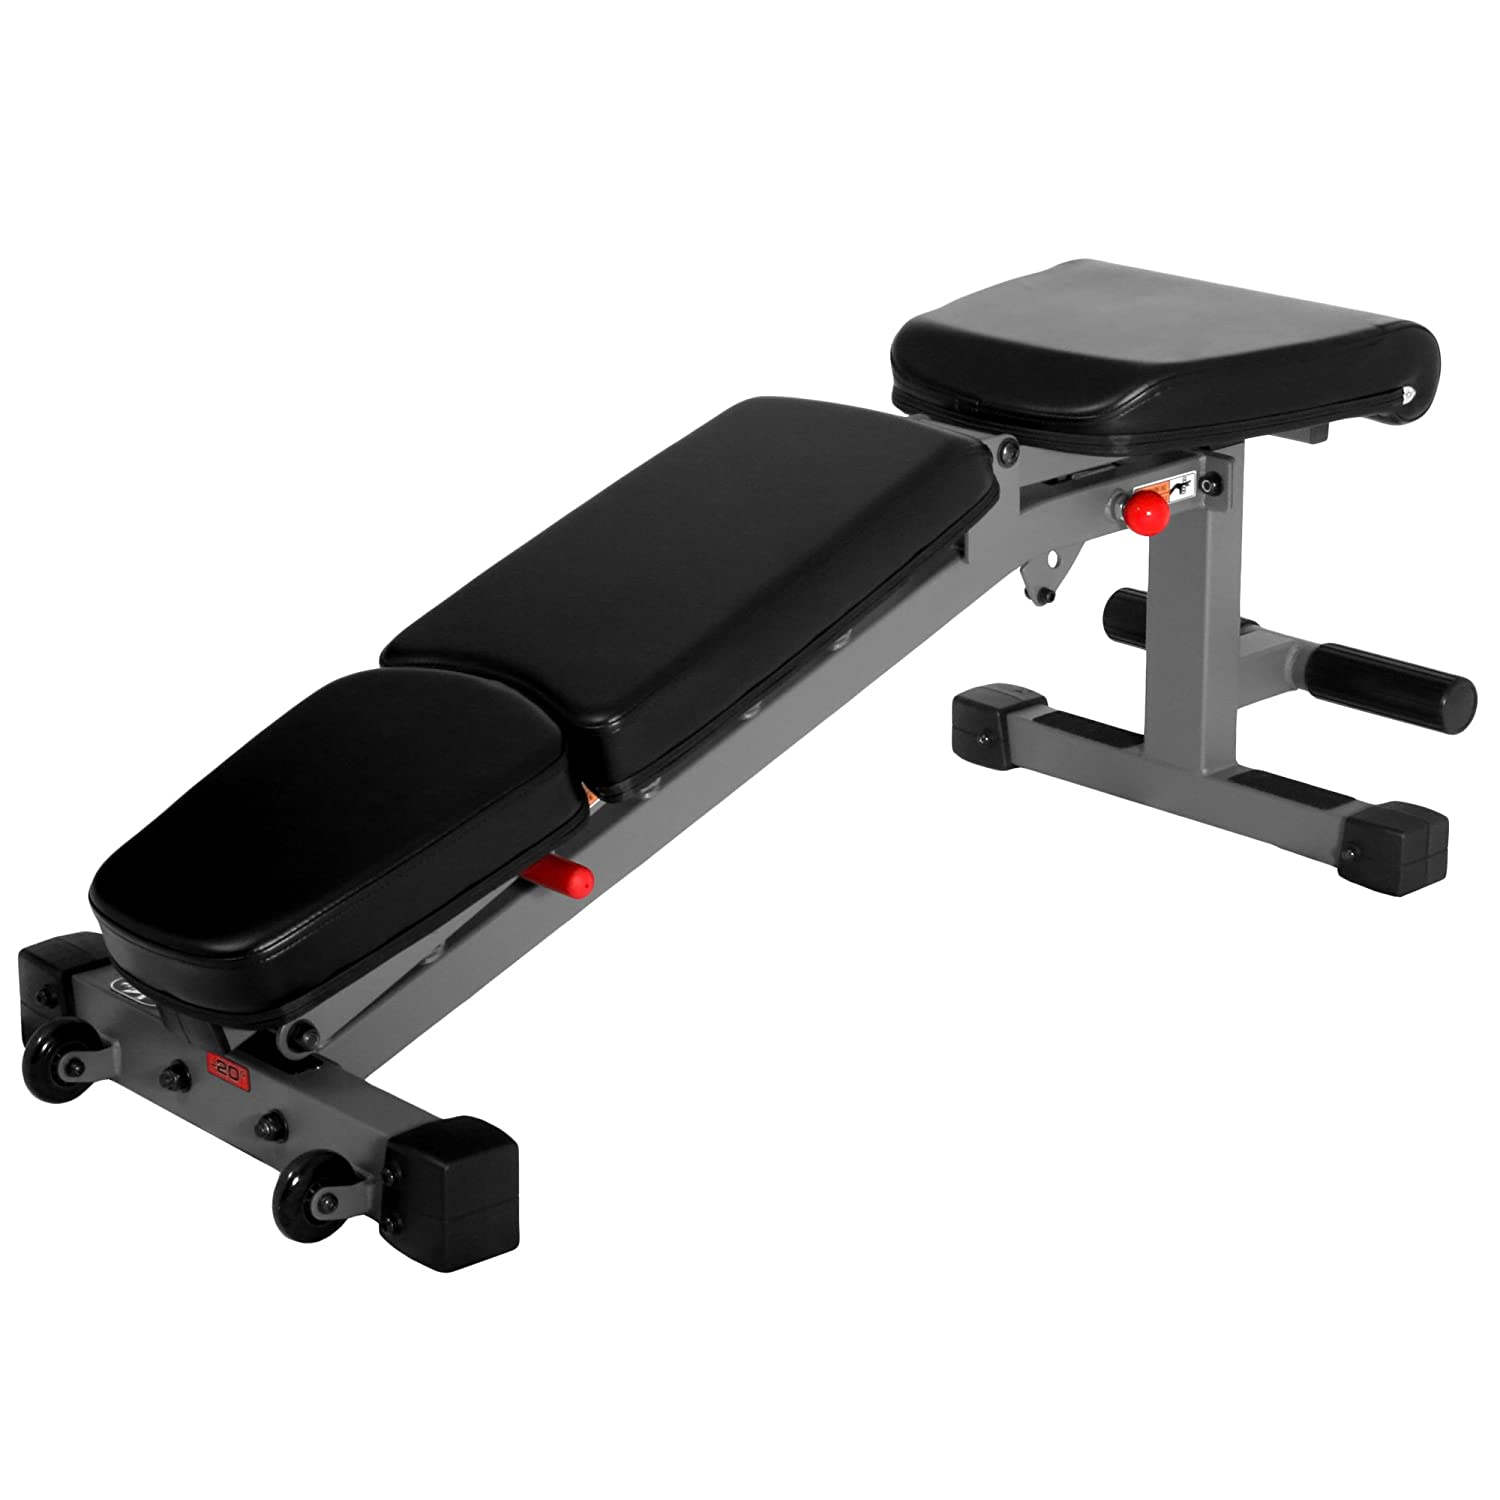 for adjustable at suppliers used weights sale and alibaba with manufacturers showroom bench com weight benches